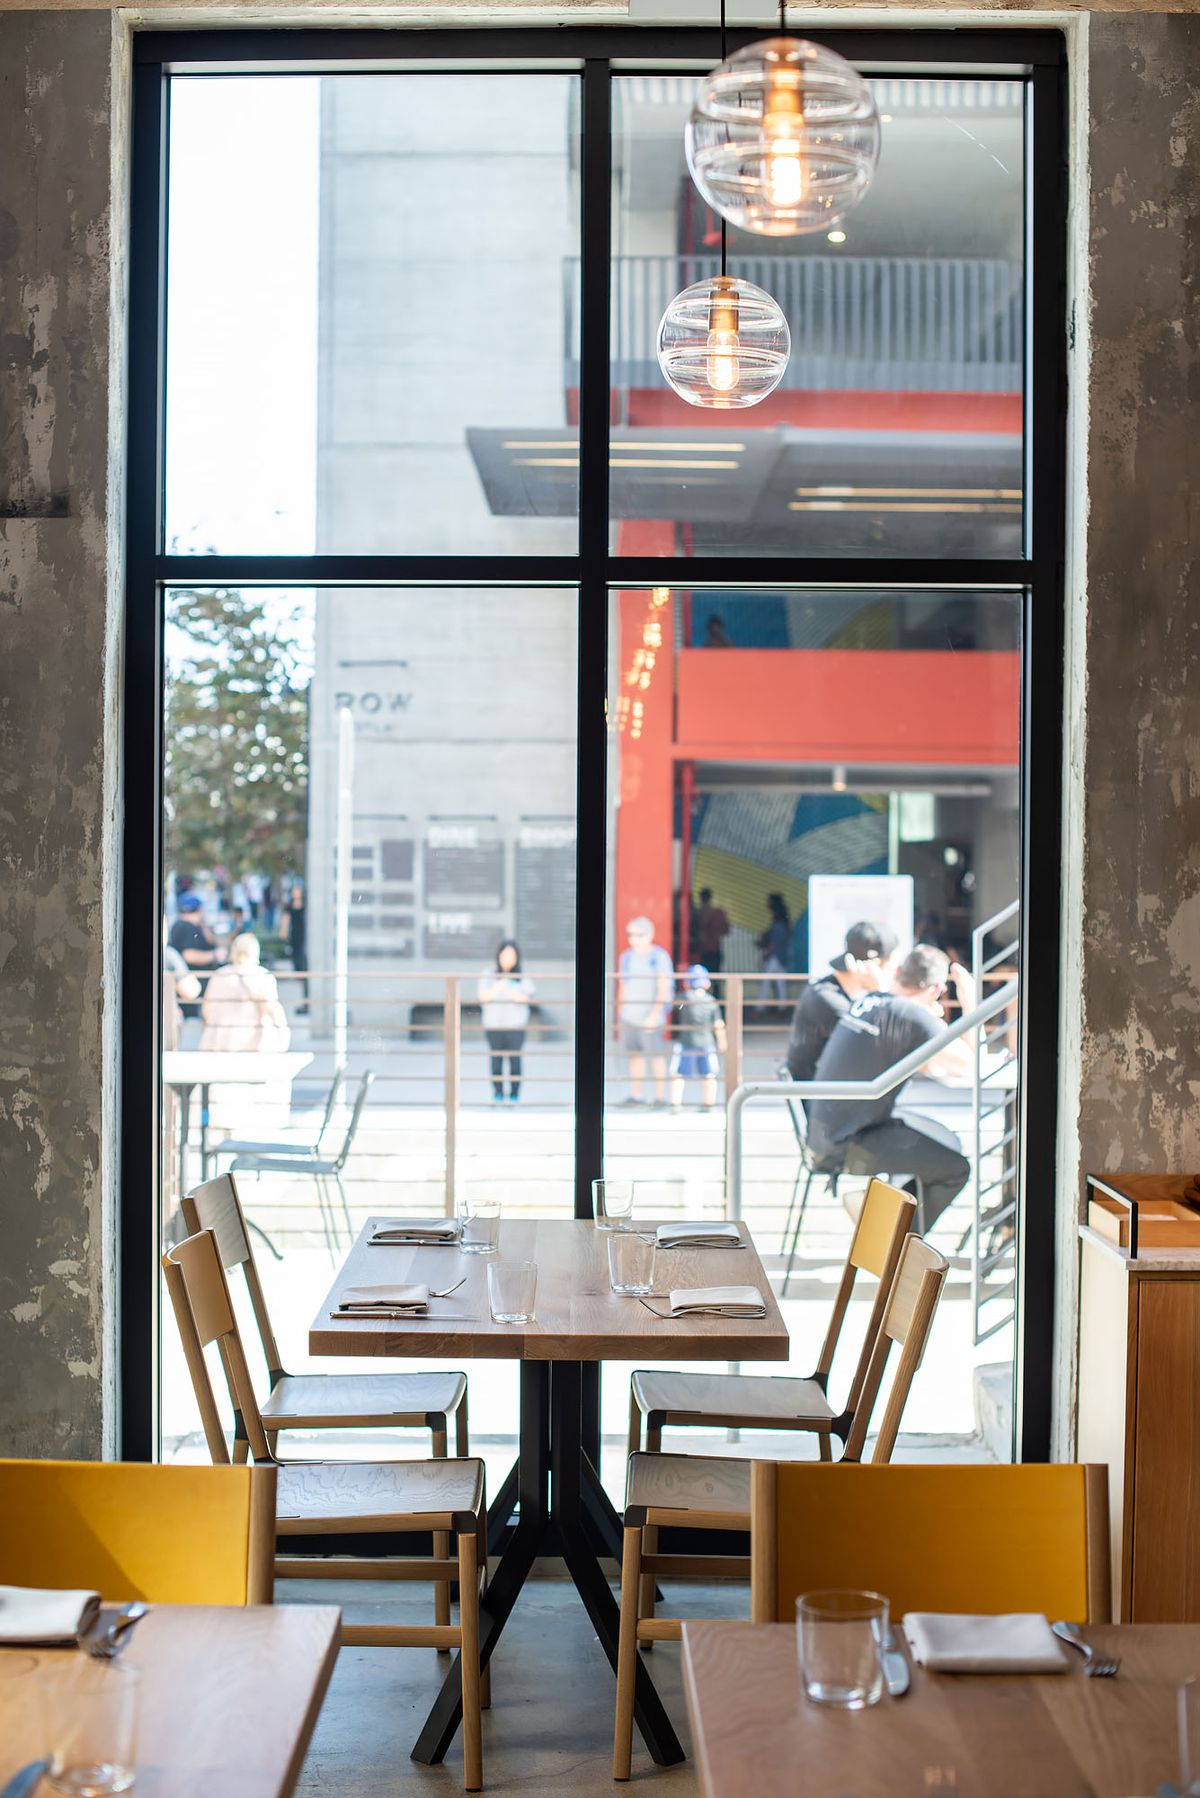 Tall windows at a new warehouse restaurant with yellow wooden chairs.